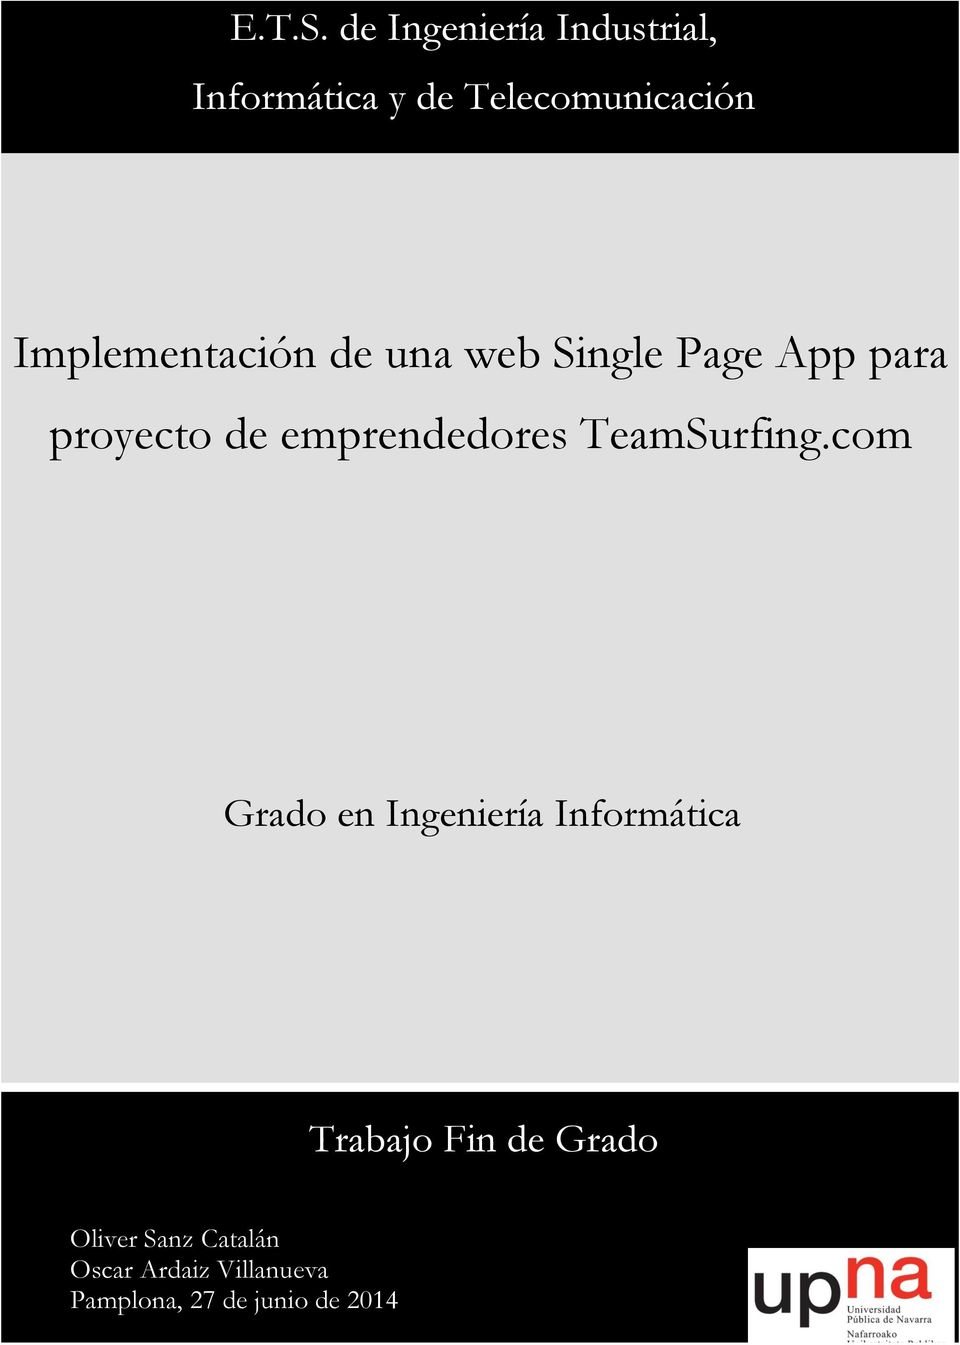 Implementación de una web Single Page App para proyecto de